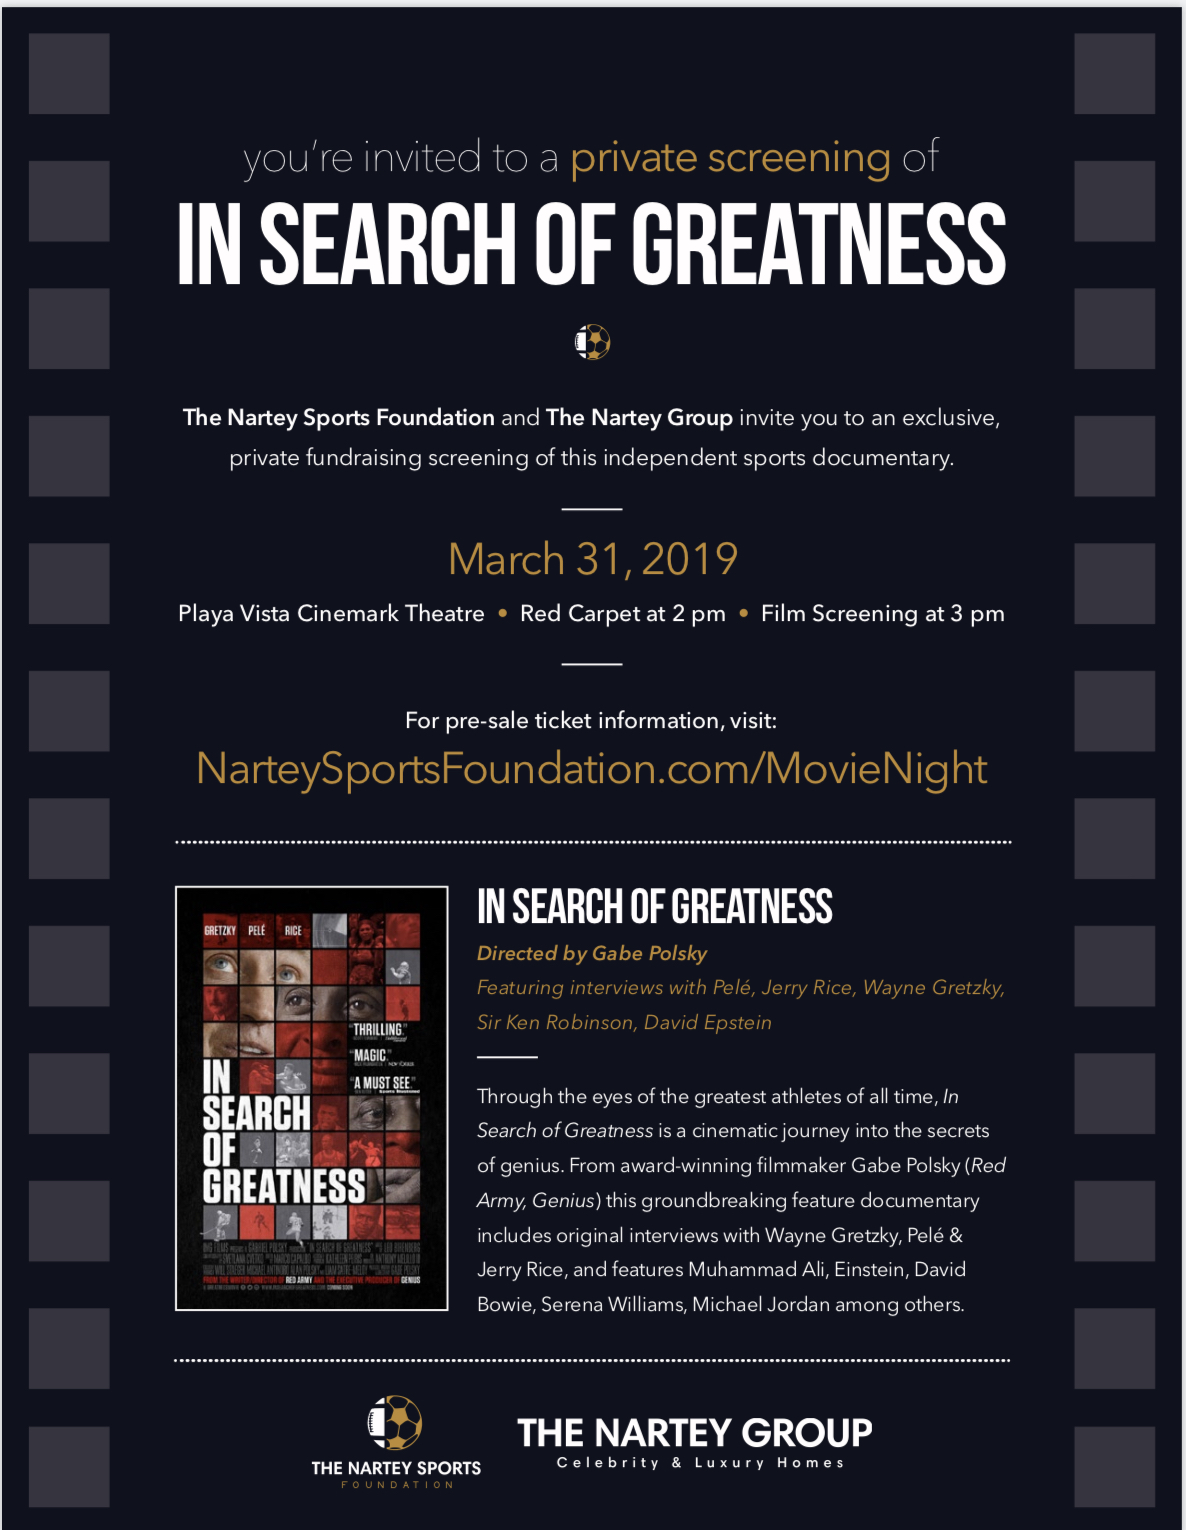 Enjoy a night of fun with a purpose at The Nartey Sports Foundation's charity film screening at Cinemark Playa Vista! - Purchase Tickets Today on Eventbrite:https://www.eventbrite.com/e/in-search-of-greatness-charity-screening-tickets-58546017715